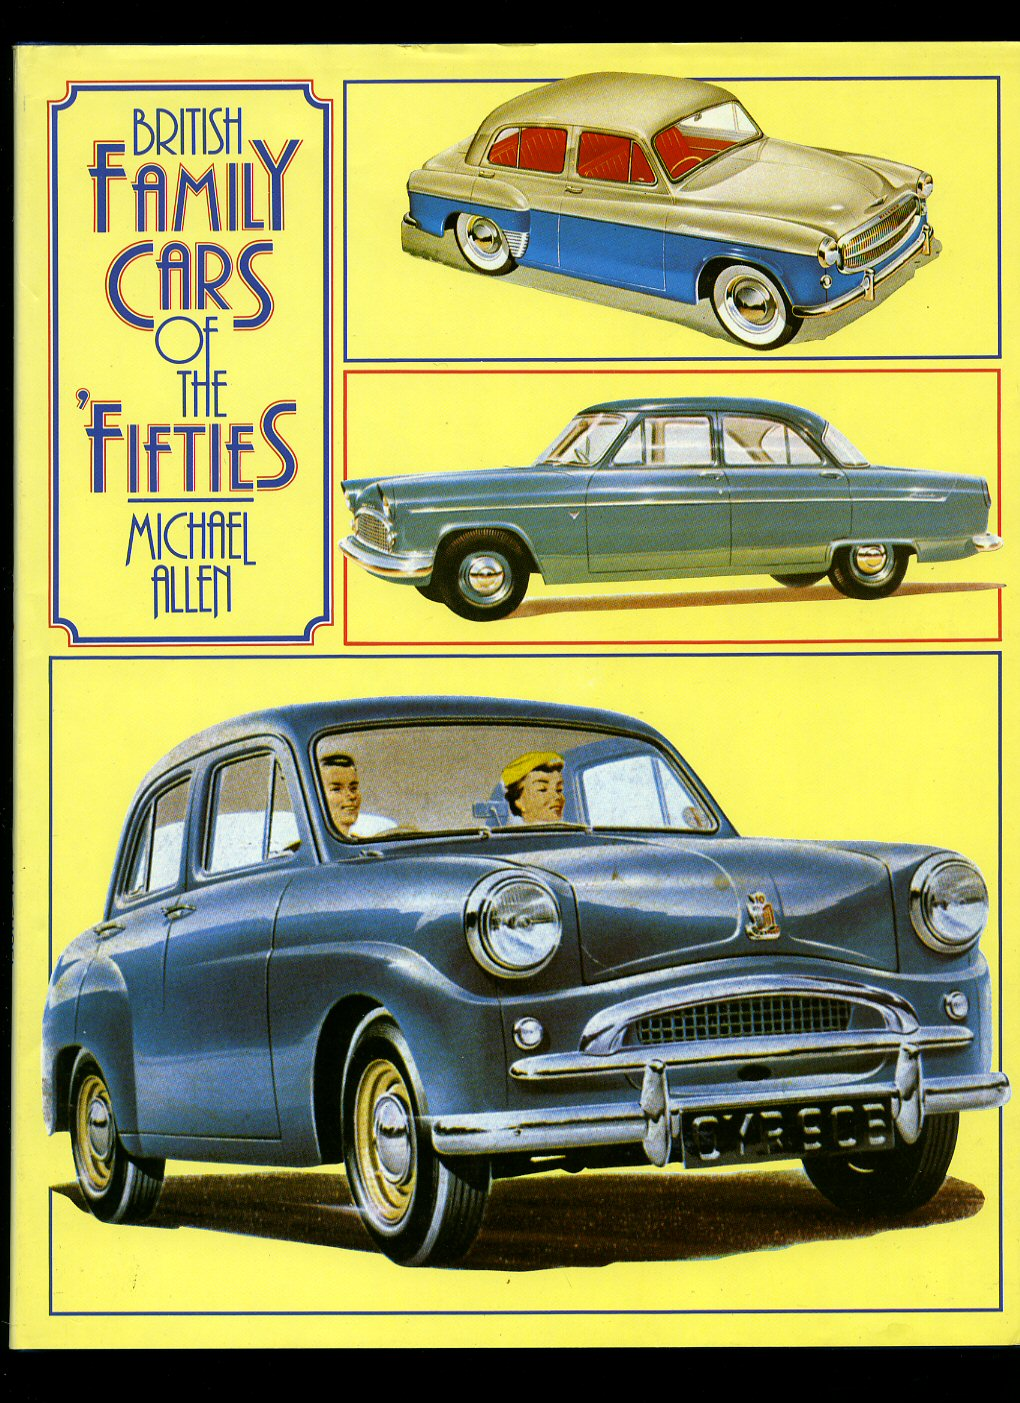 ALLEN, MICHAEL - British Family Cars of the 'Fifties